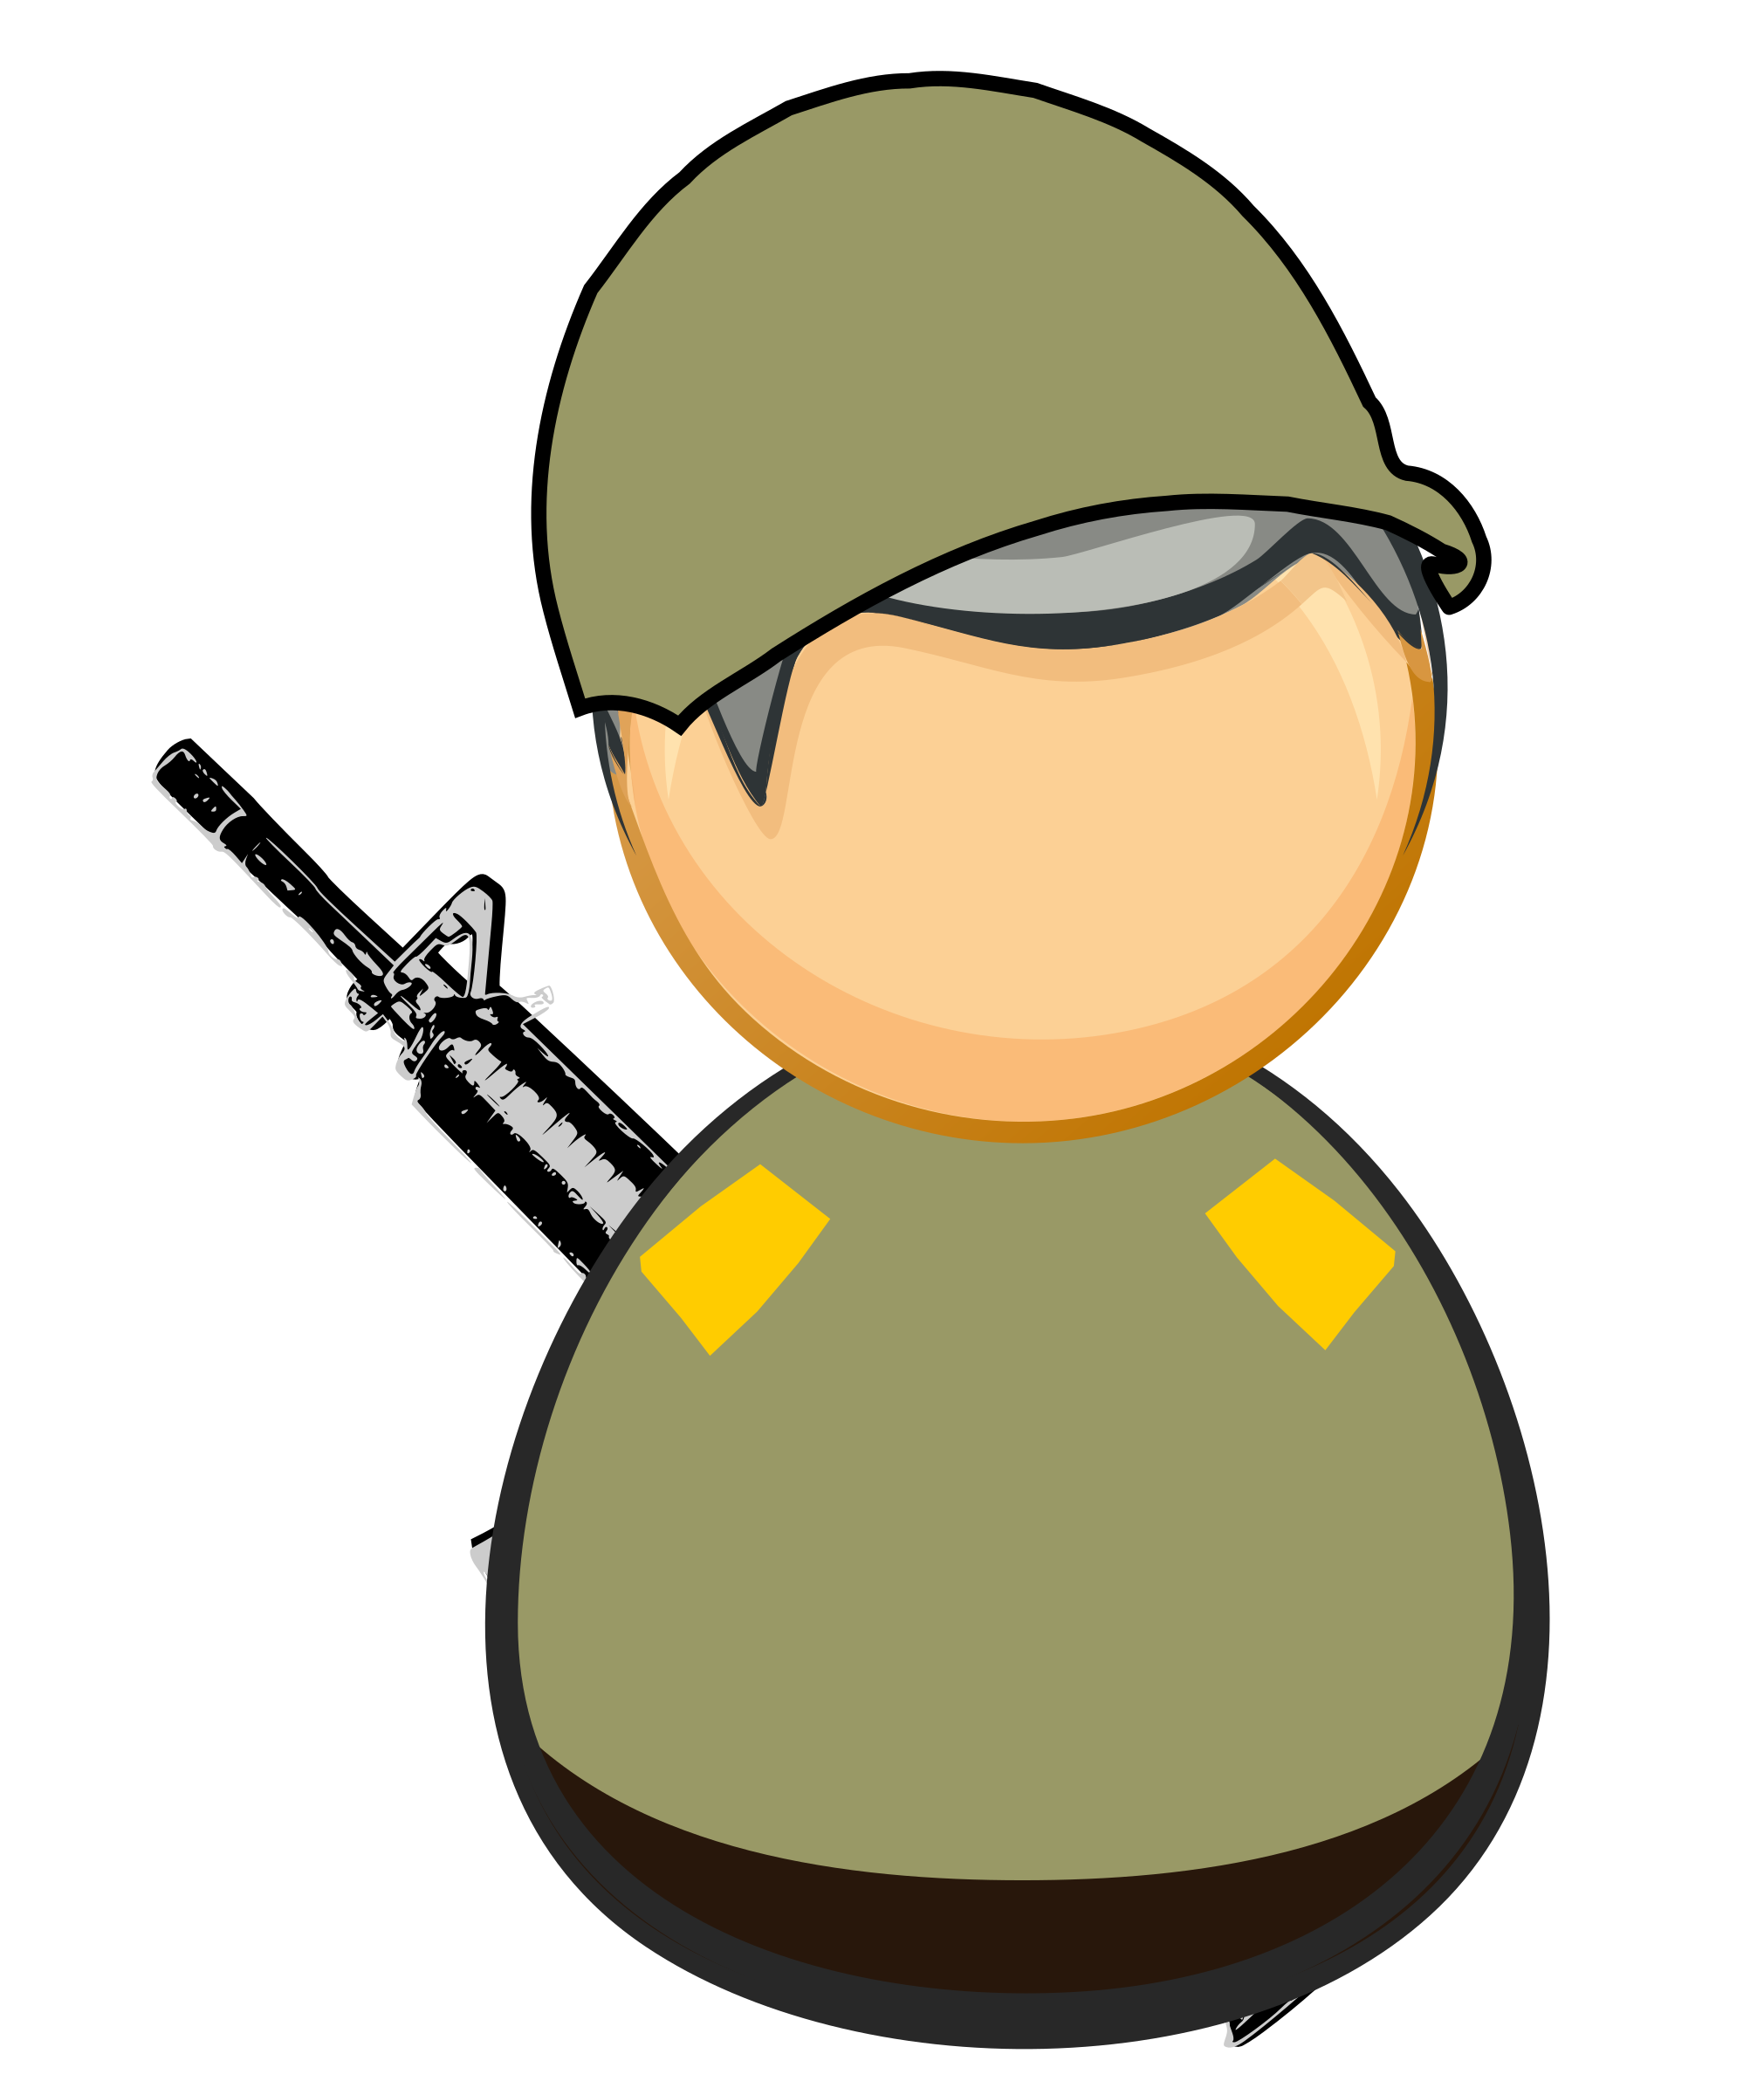 Soldier svg icon. Clipart first responder army